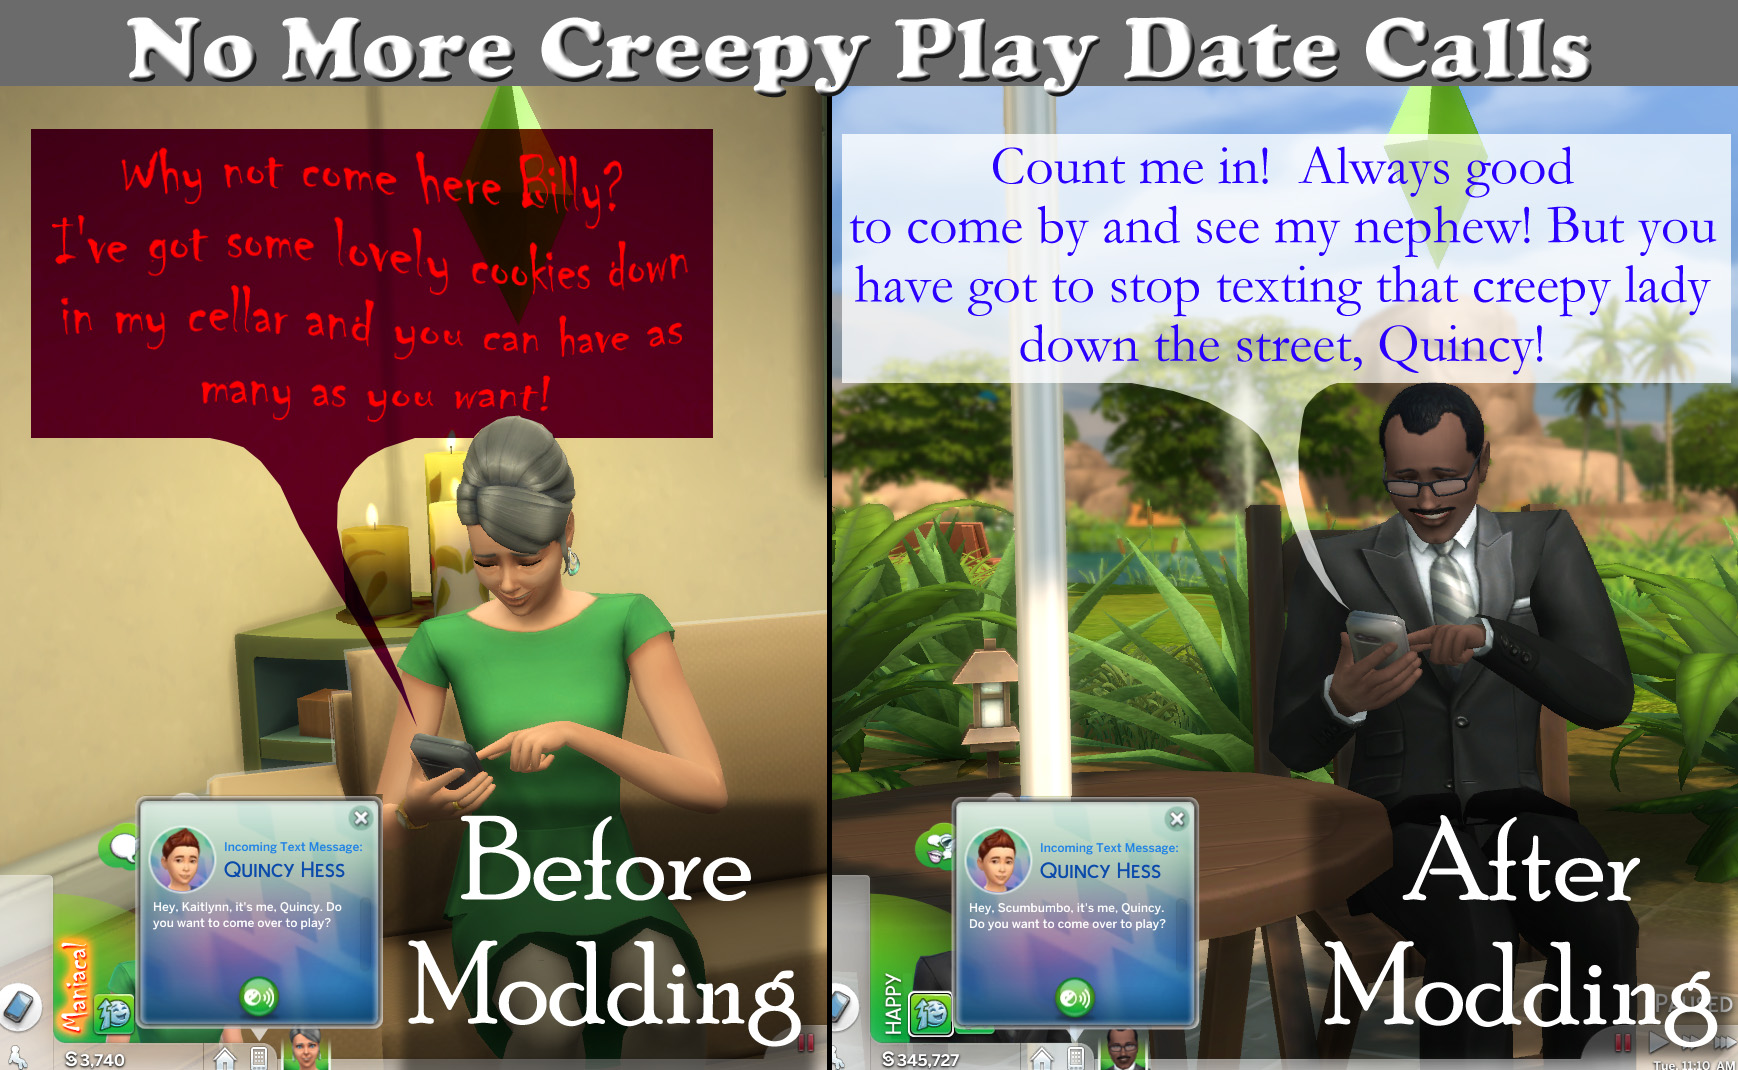 classic dating sims How to speak simlish the sims, developed by maxis and distributed by electronic arts, is one of the most popular video games available a fictional language was developed and incorporated into the game used in sims 1, 2, 3, and 4.